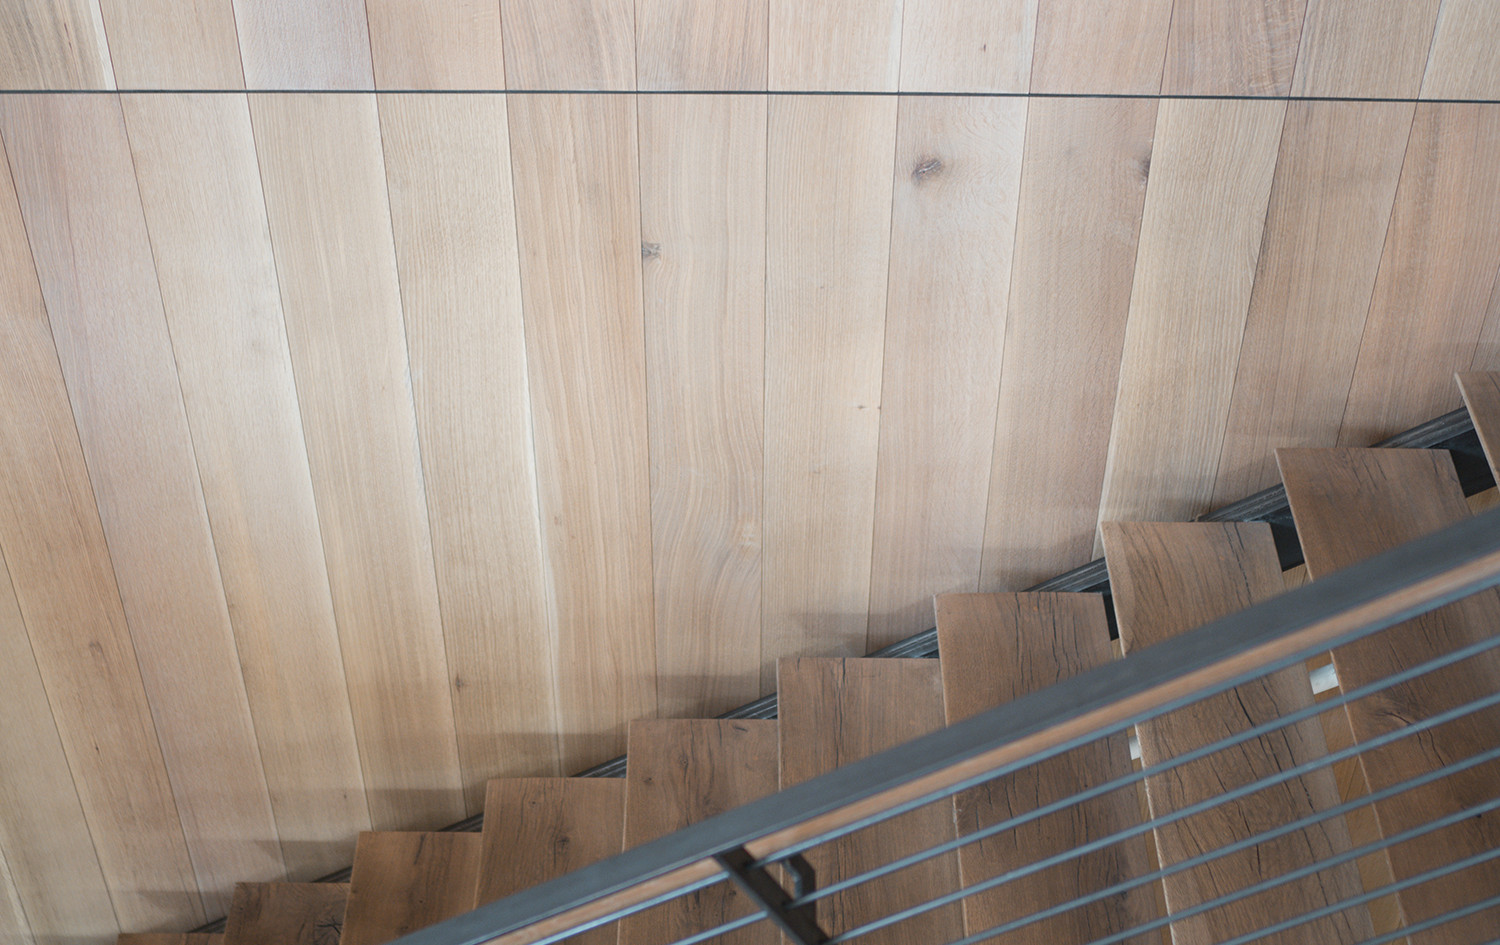 Live Sawn Oak Hardwood Wall Cladding